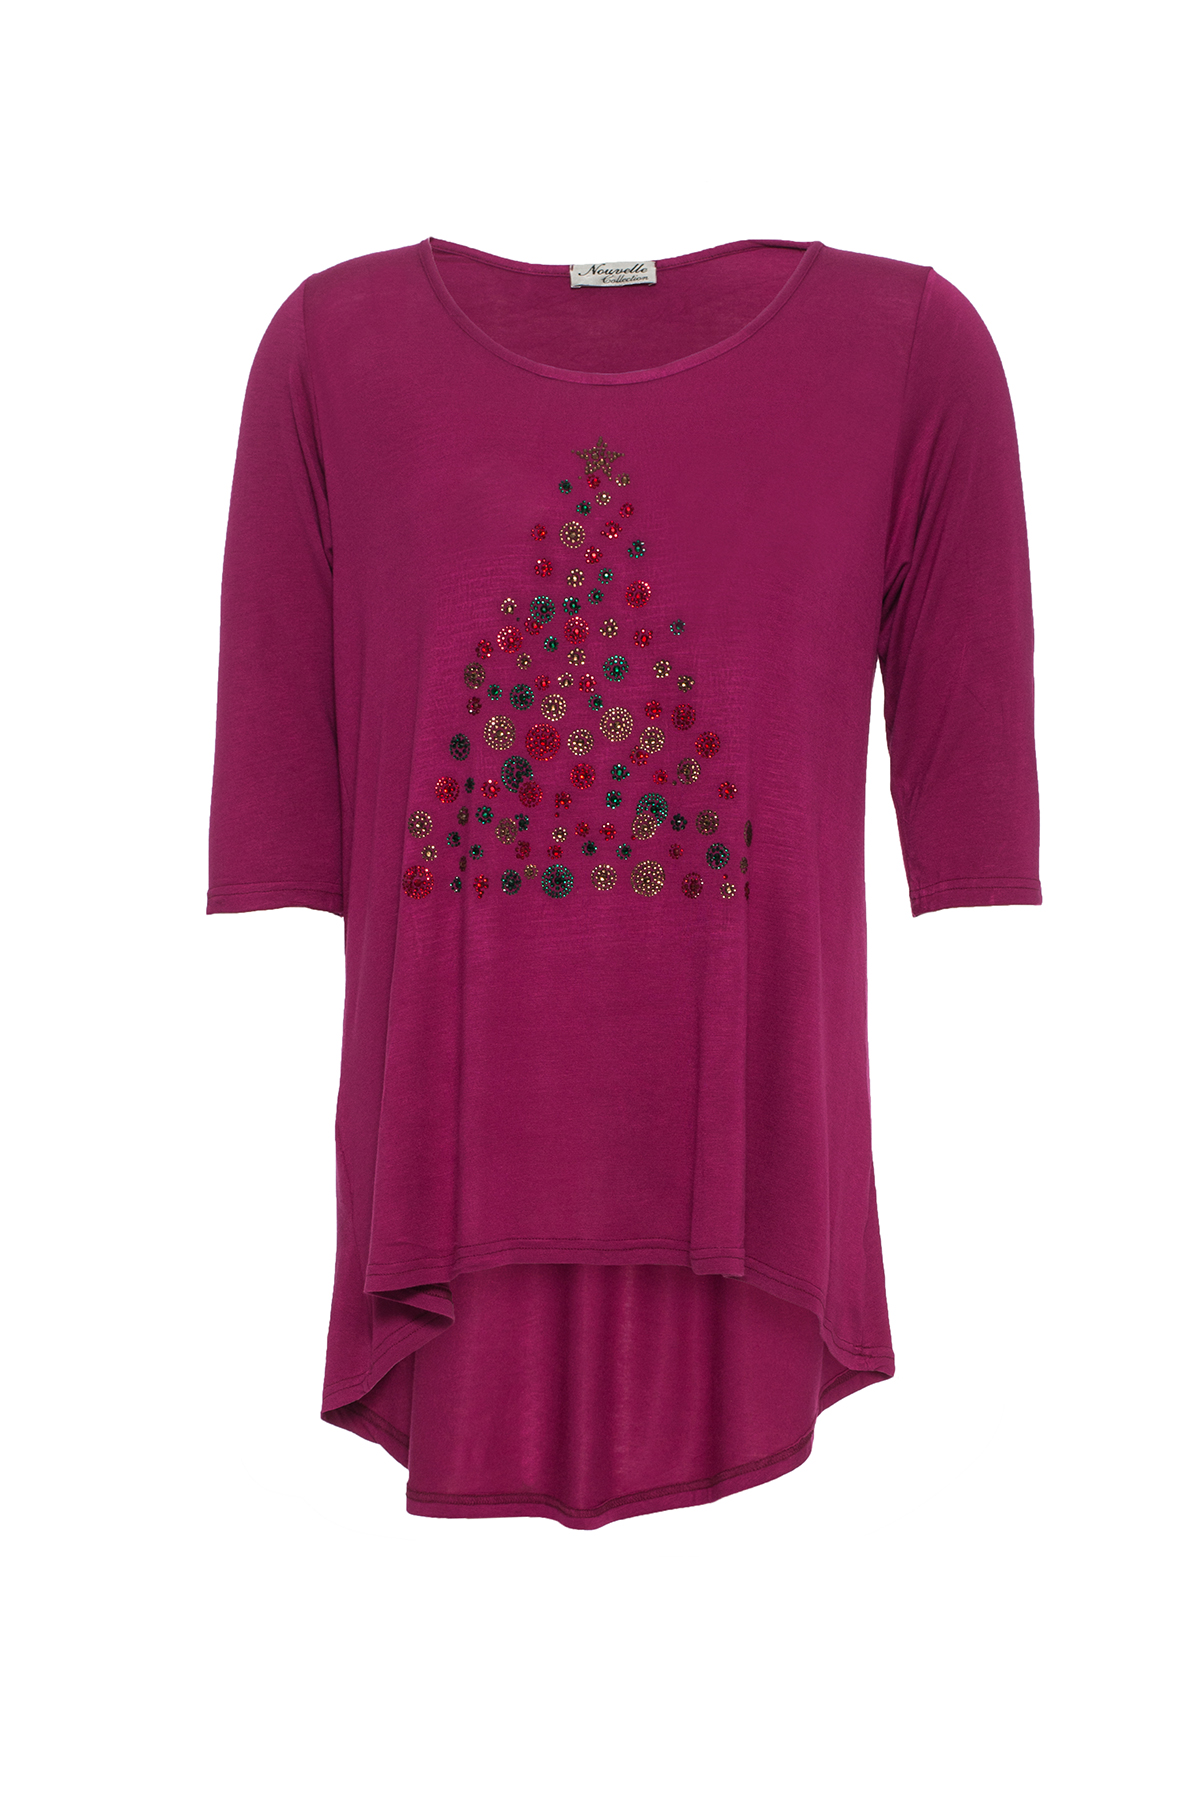 Our exciting range of women's casual and going out tops feature pretty and practical wardrobe staples such as ladies' vests and camis, stylish crop tops, colourful tunics, gorgeous party numbers and chic shirts.